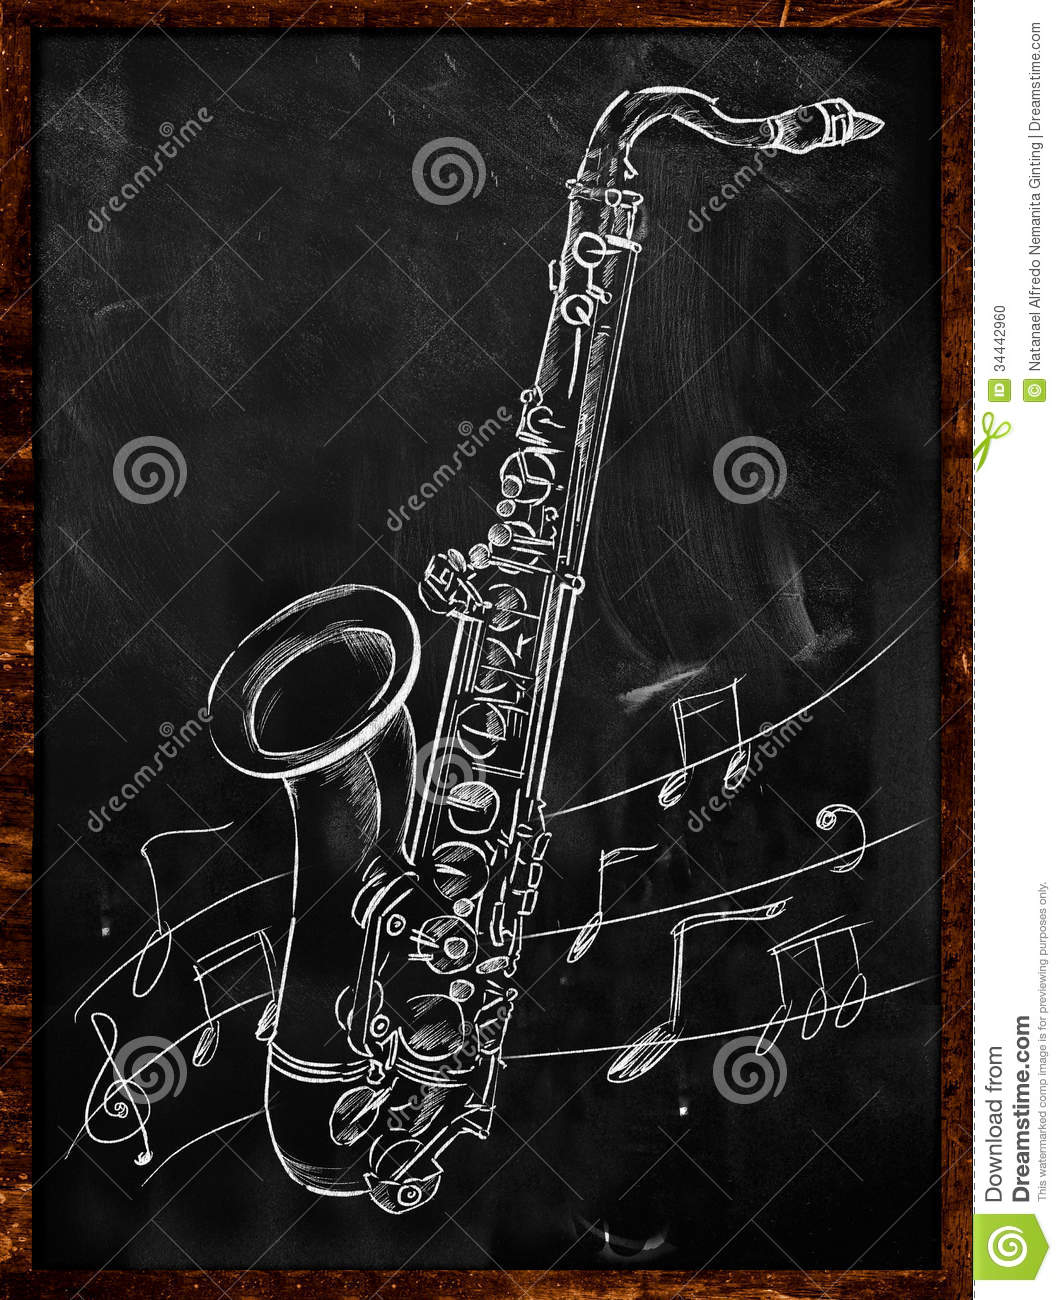 dessin de saxophone esquissant sur le tableau noir illustration stock illustration du objet. Black Bedroom Furniture Sets. Home Design Ideas